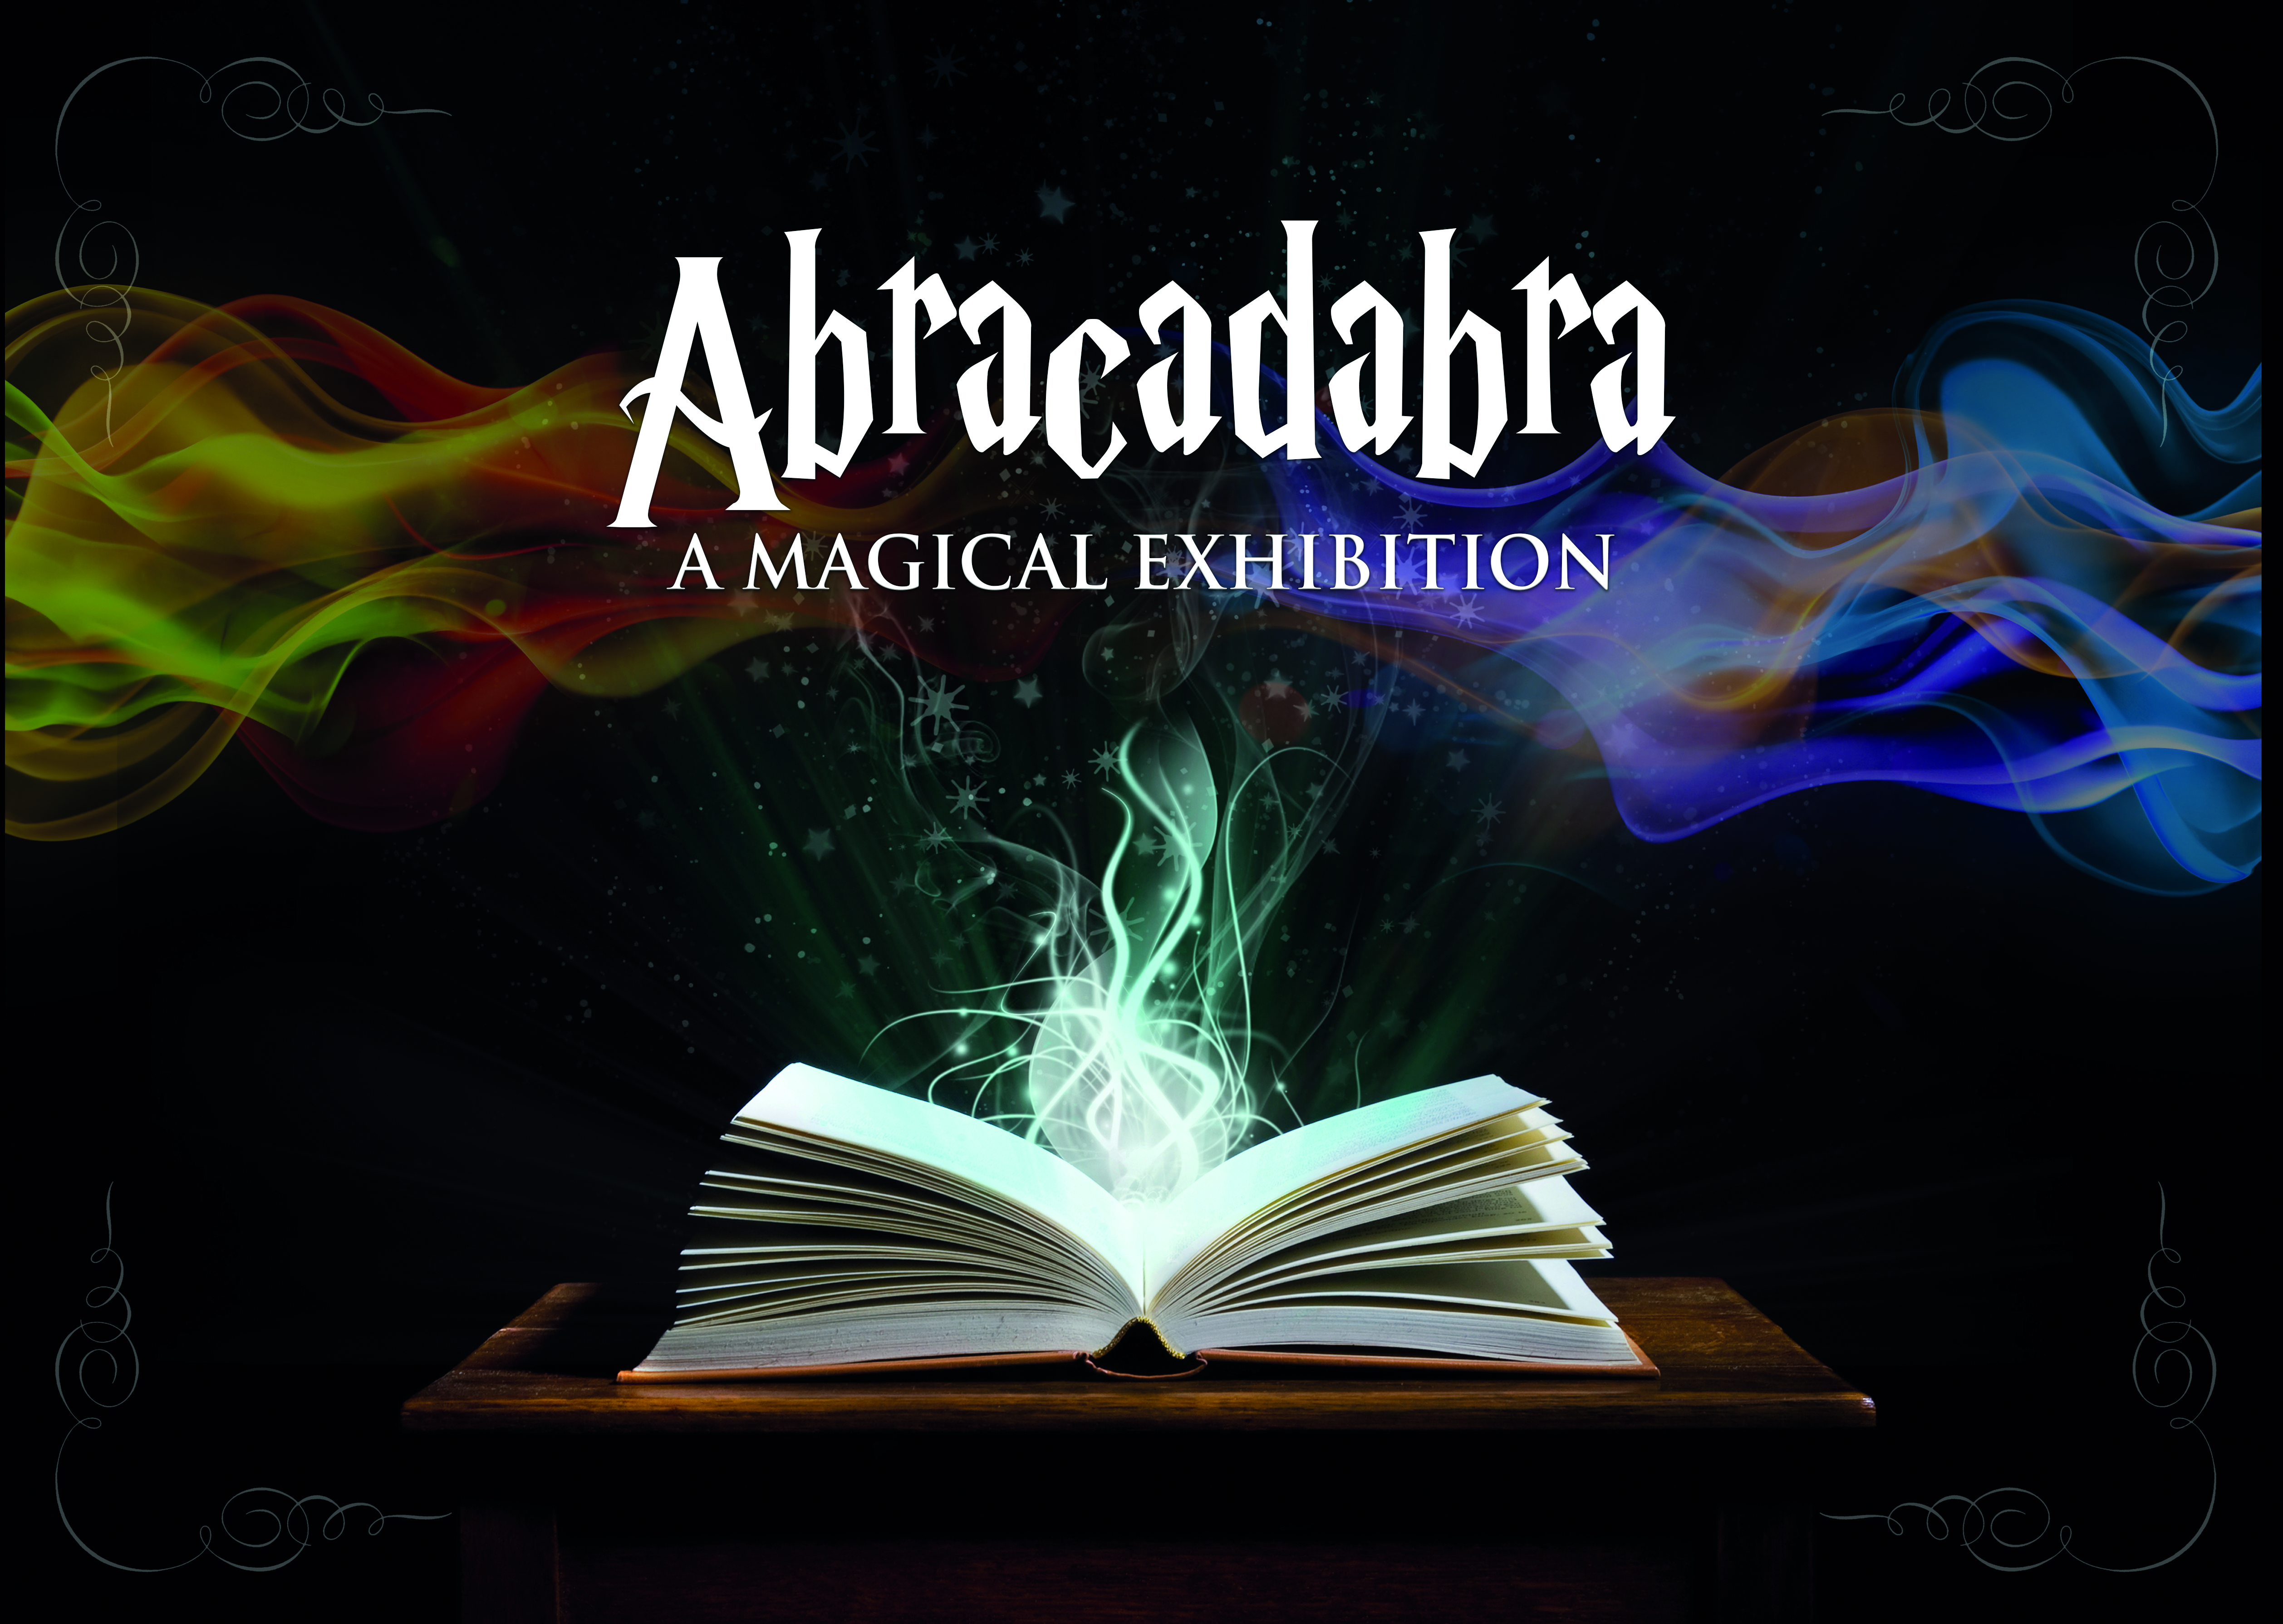 Marvellous magical from folklore, stage and screen. On show at Arbuthnot Museum 28 June to 17 August 2019.